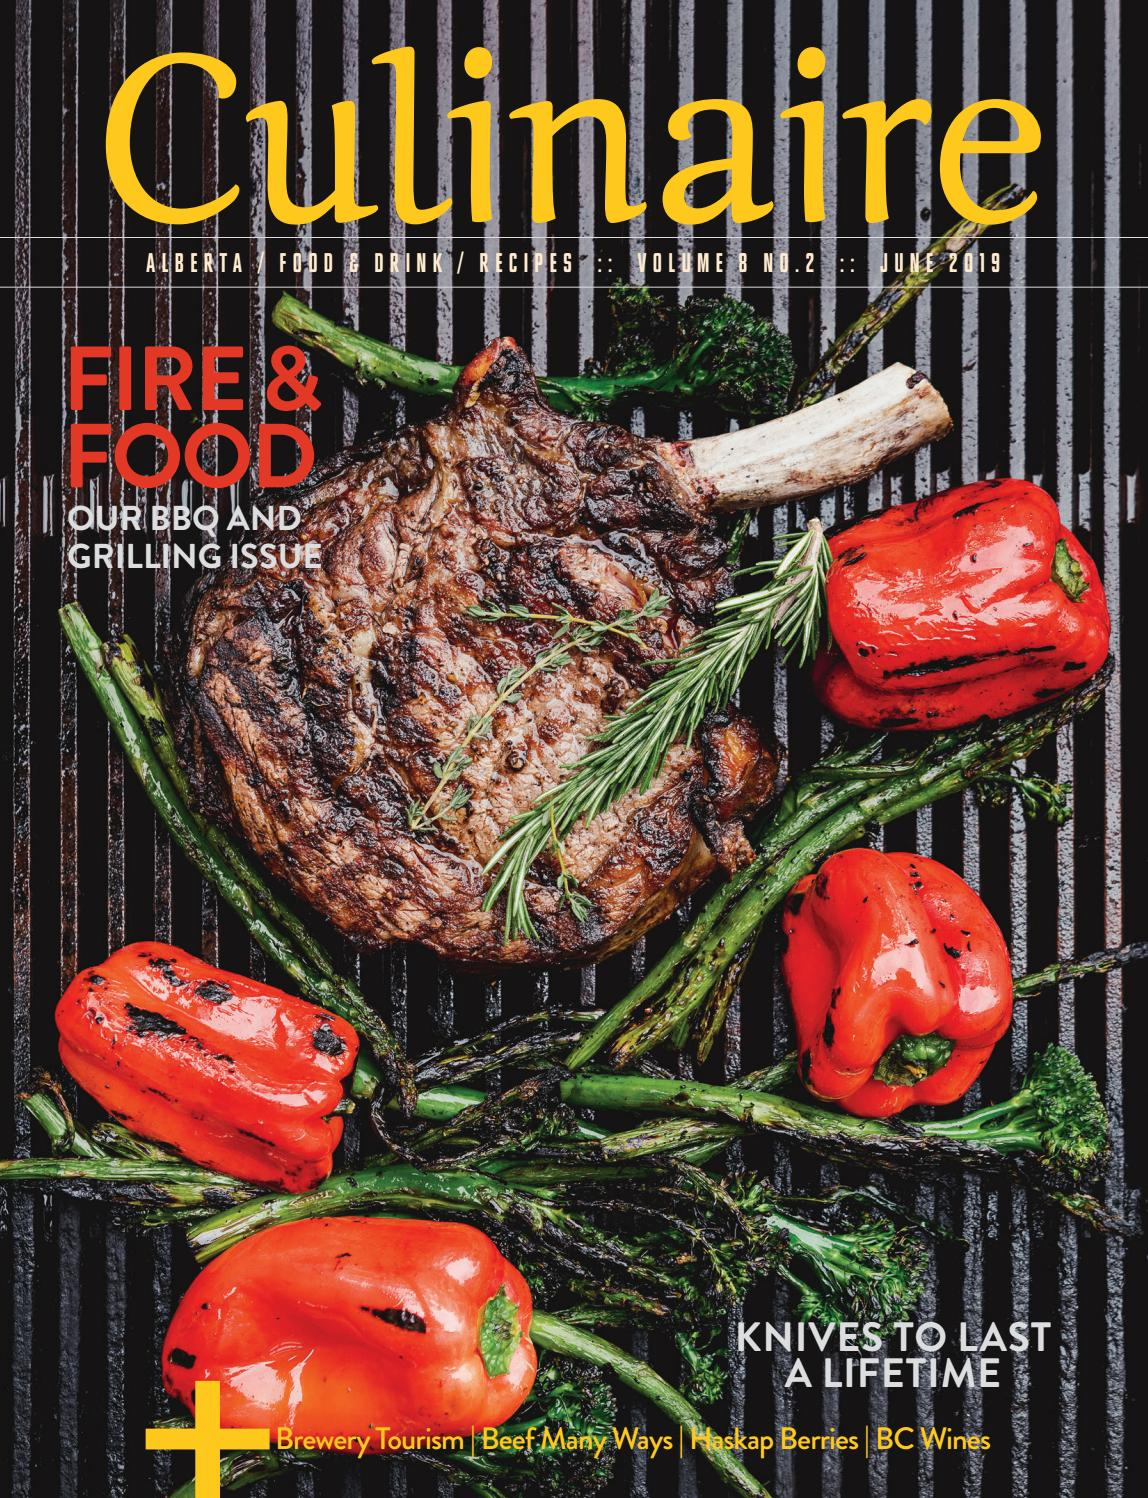 Culinaire #8:2 (June2019) by Culinaire Magazine - issuu